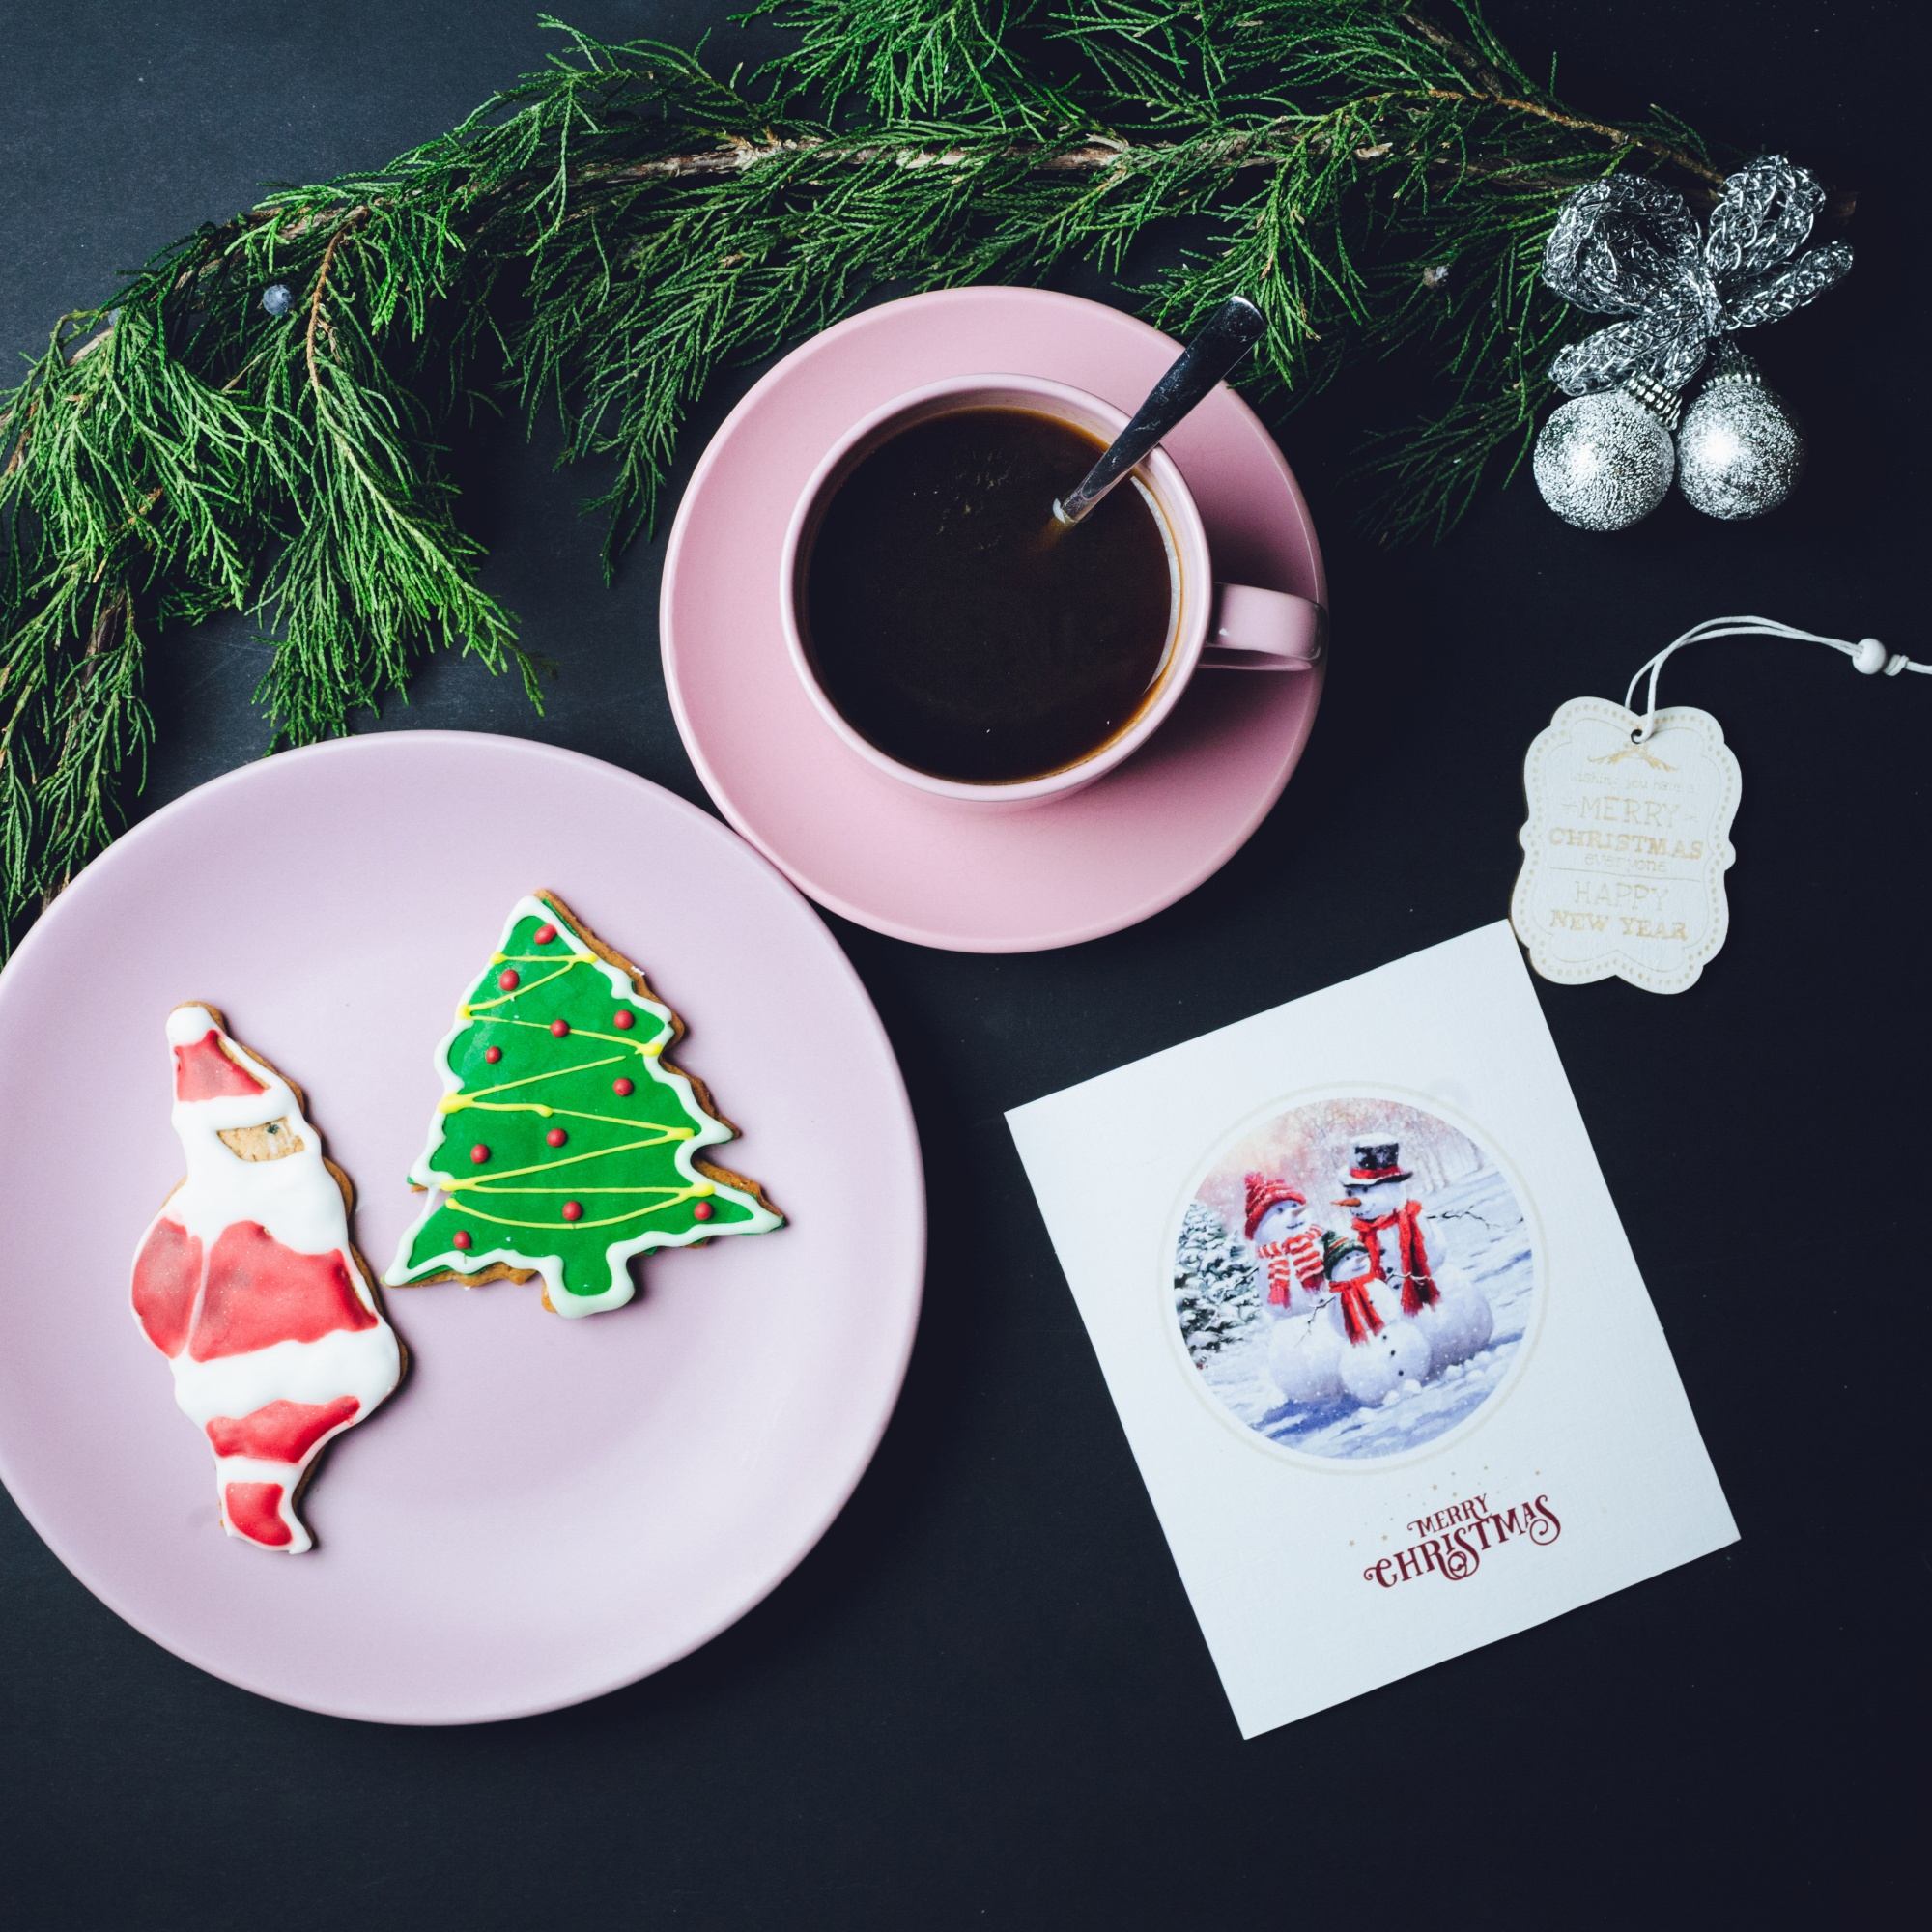 Pink cup of coffee, plate with Christmas gingerbreads and postcard lie on black table